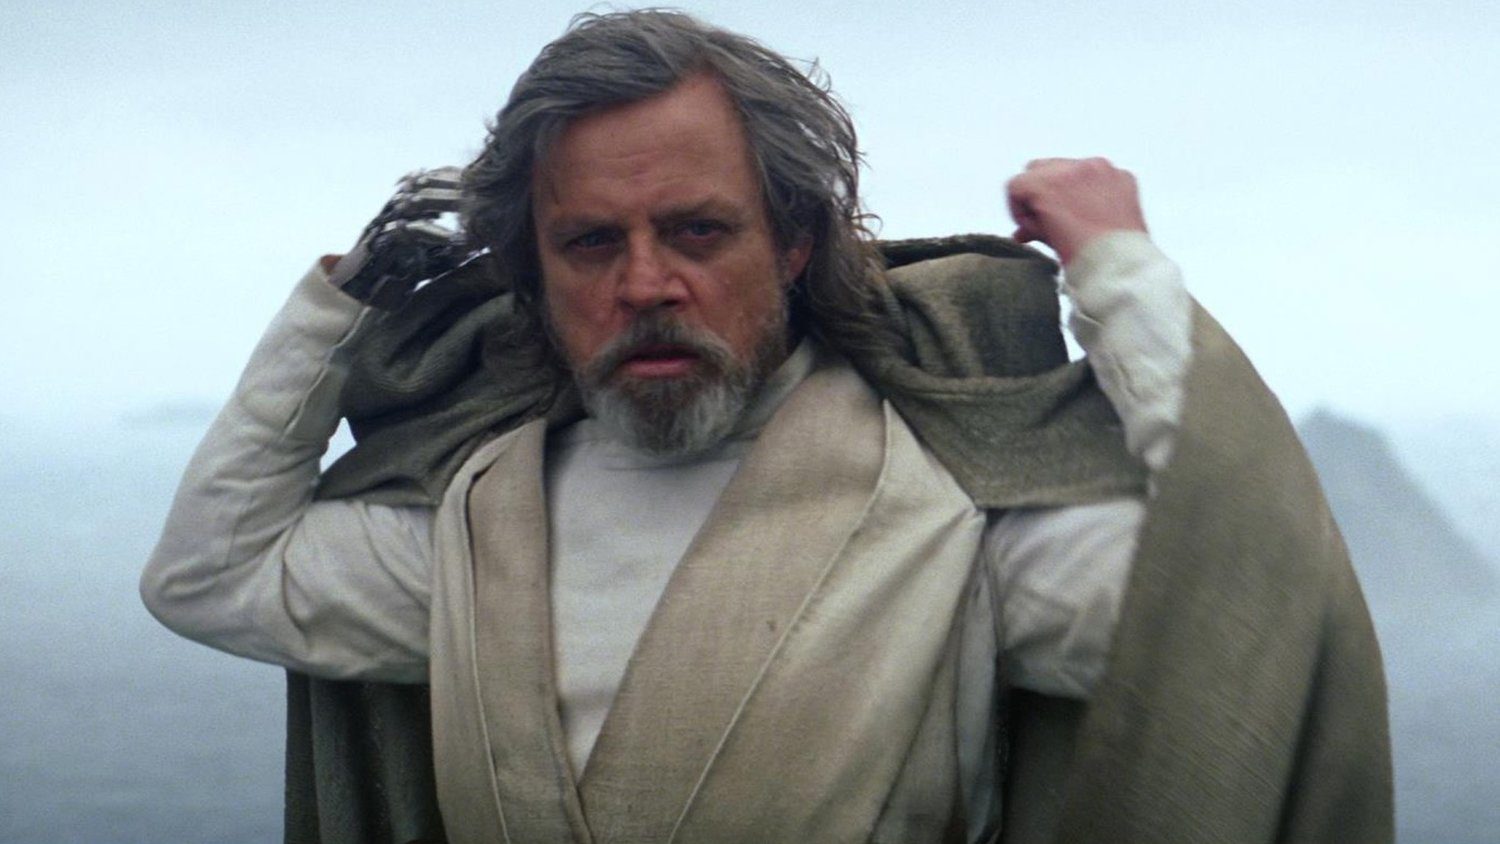 J.J. Abrams Thinks Mark Hamill Should Win an Oscar for His Work in THE LAST JEDI